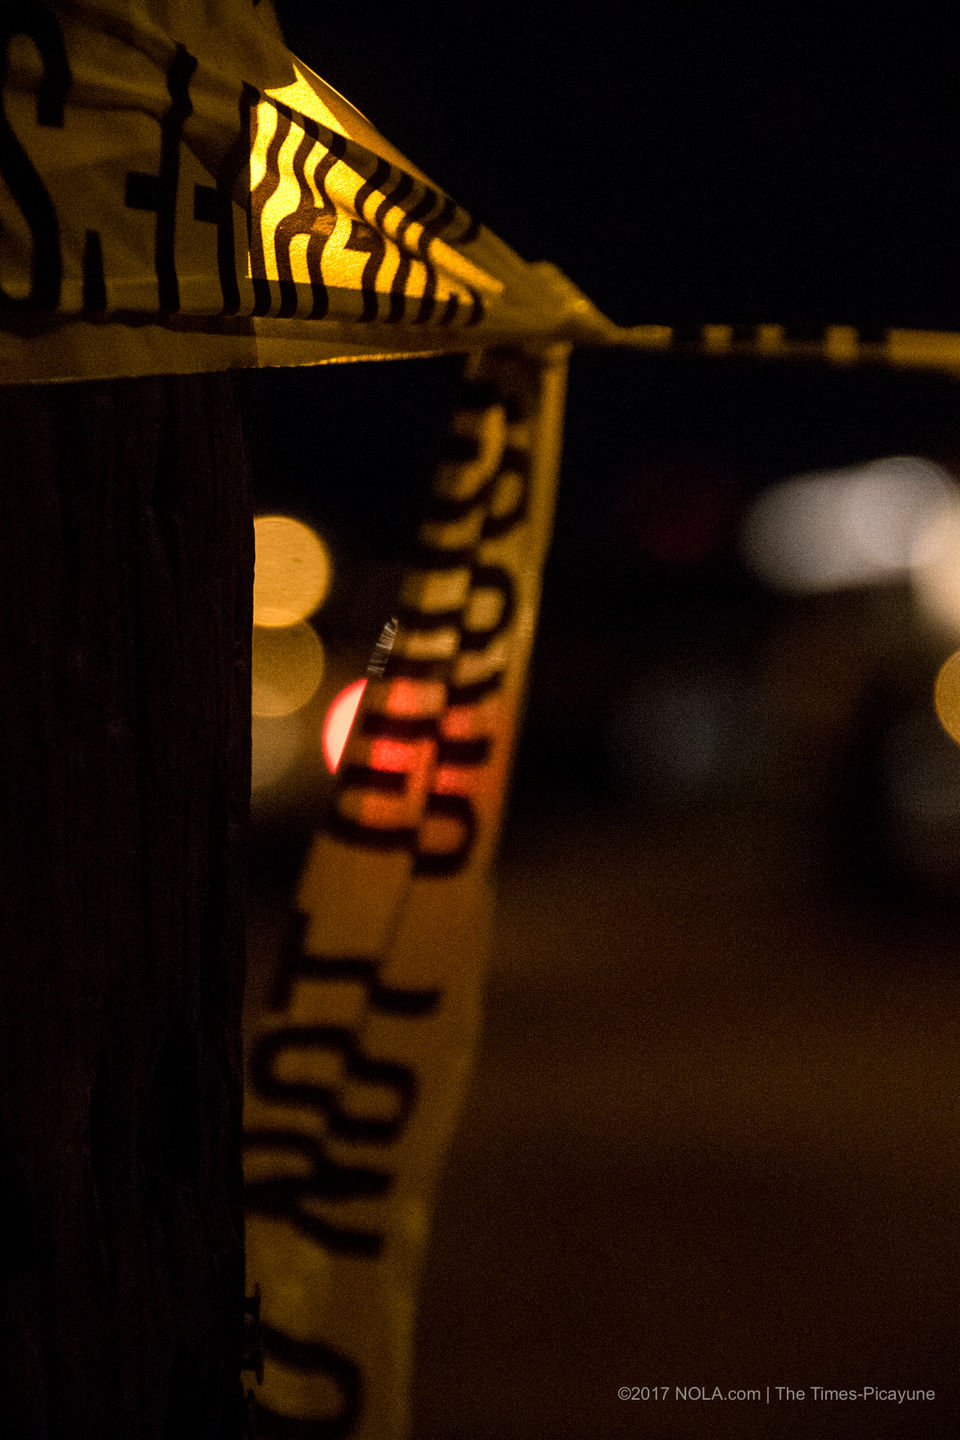 One killed, another injured in Jefferson Parish shooting Monday night